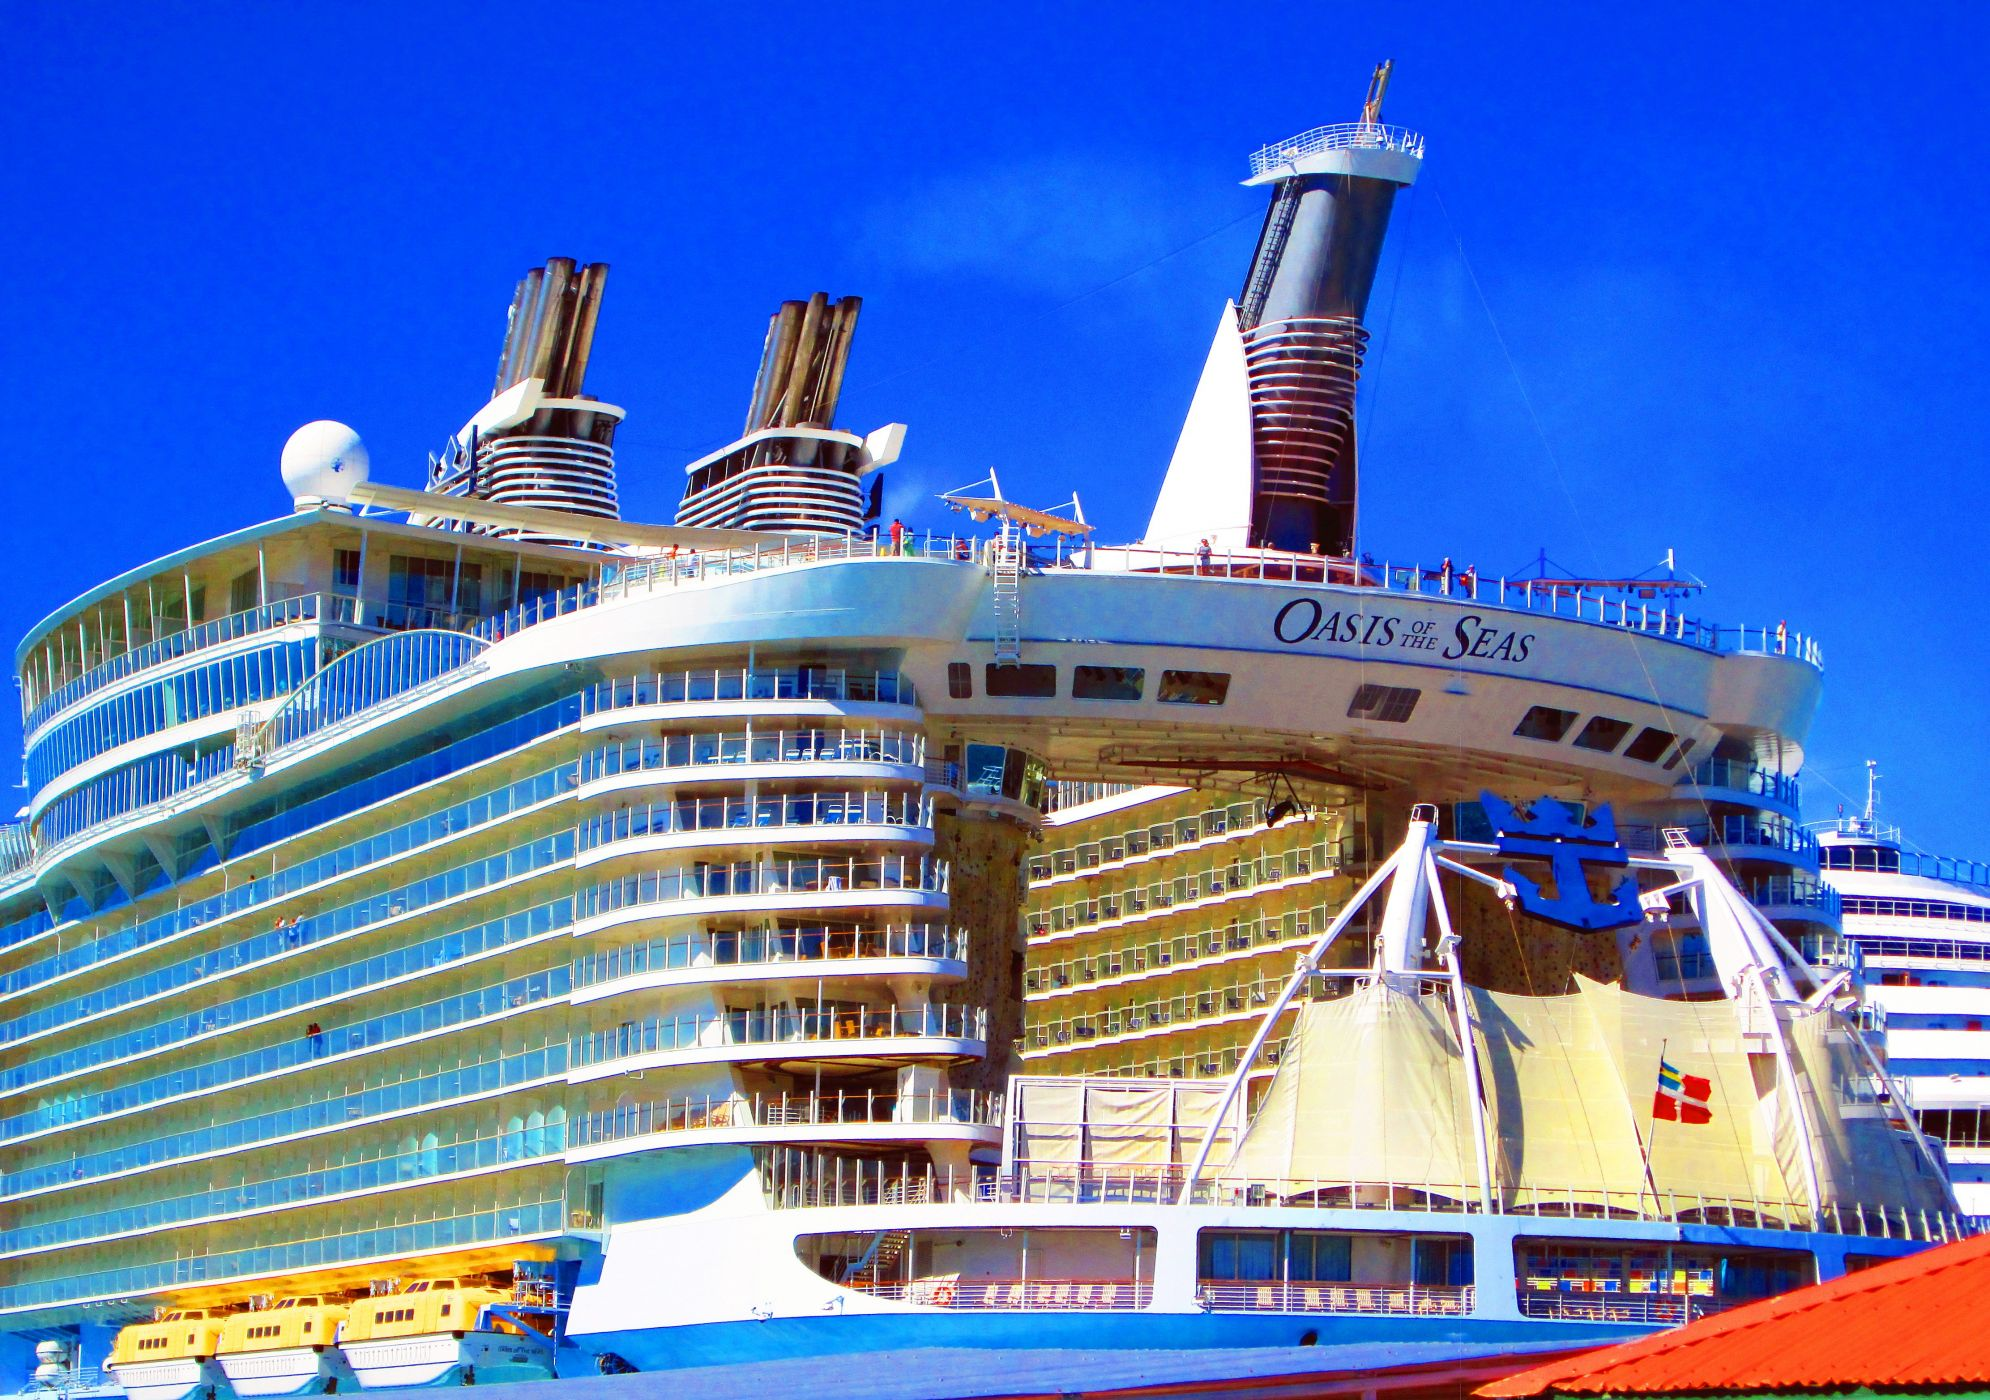 royal caribbean oasis of the seas - 1024×720